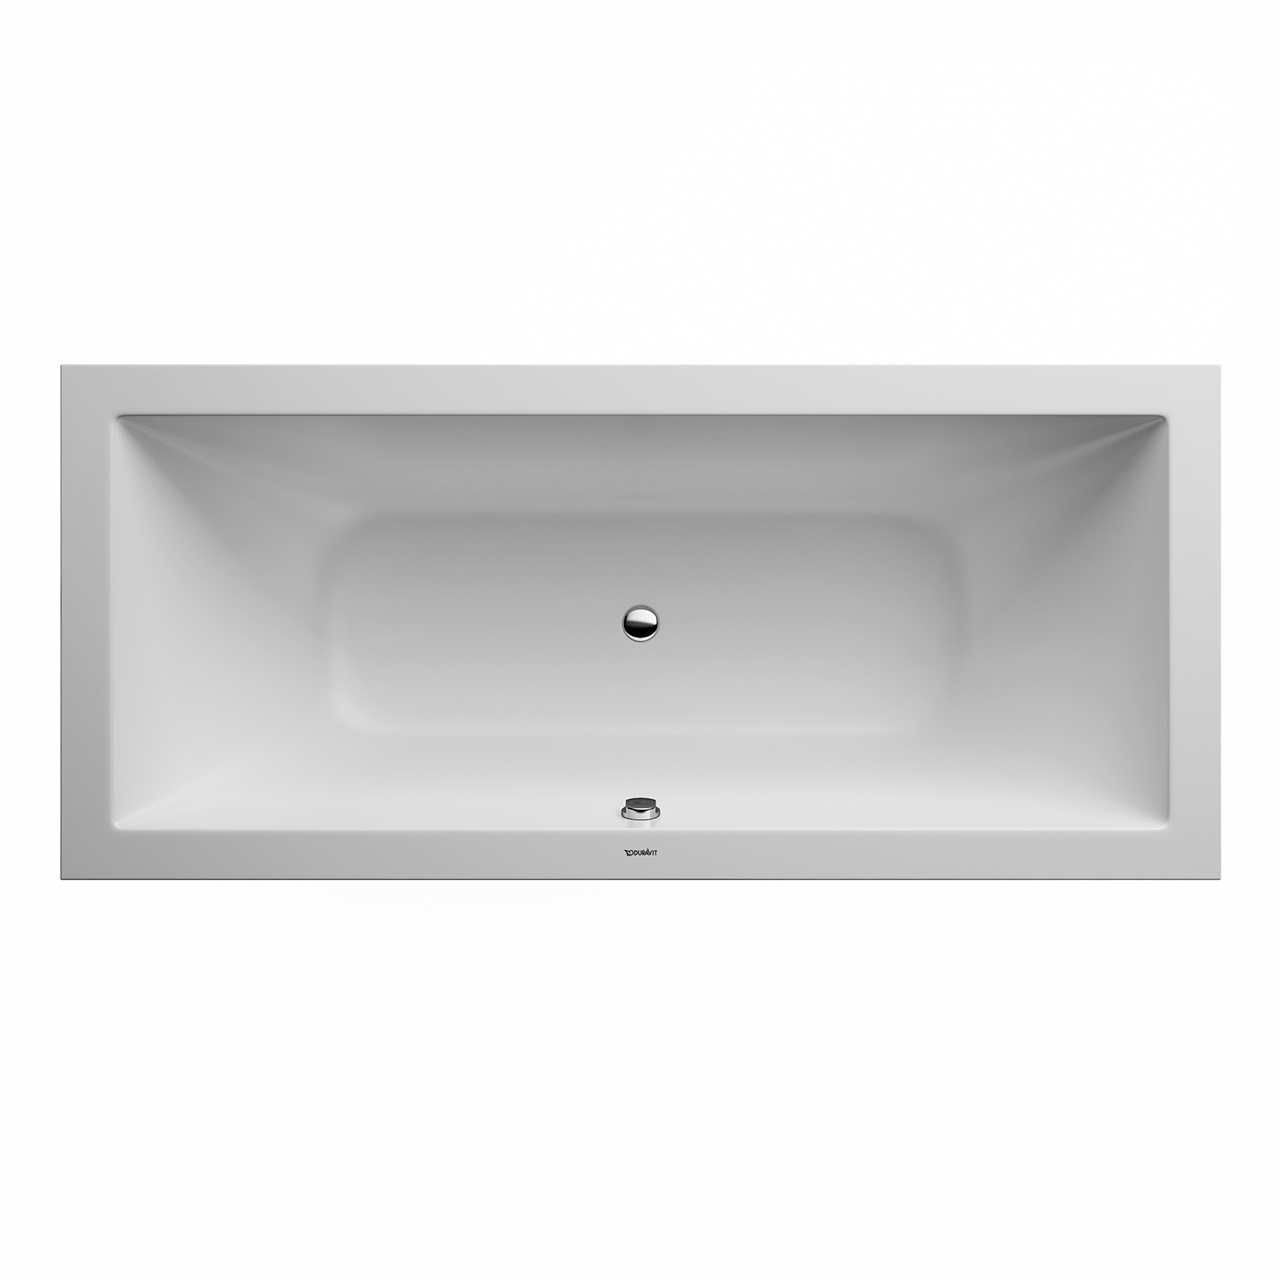 DuraSquare Bathtub by Duravit